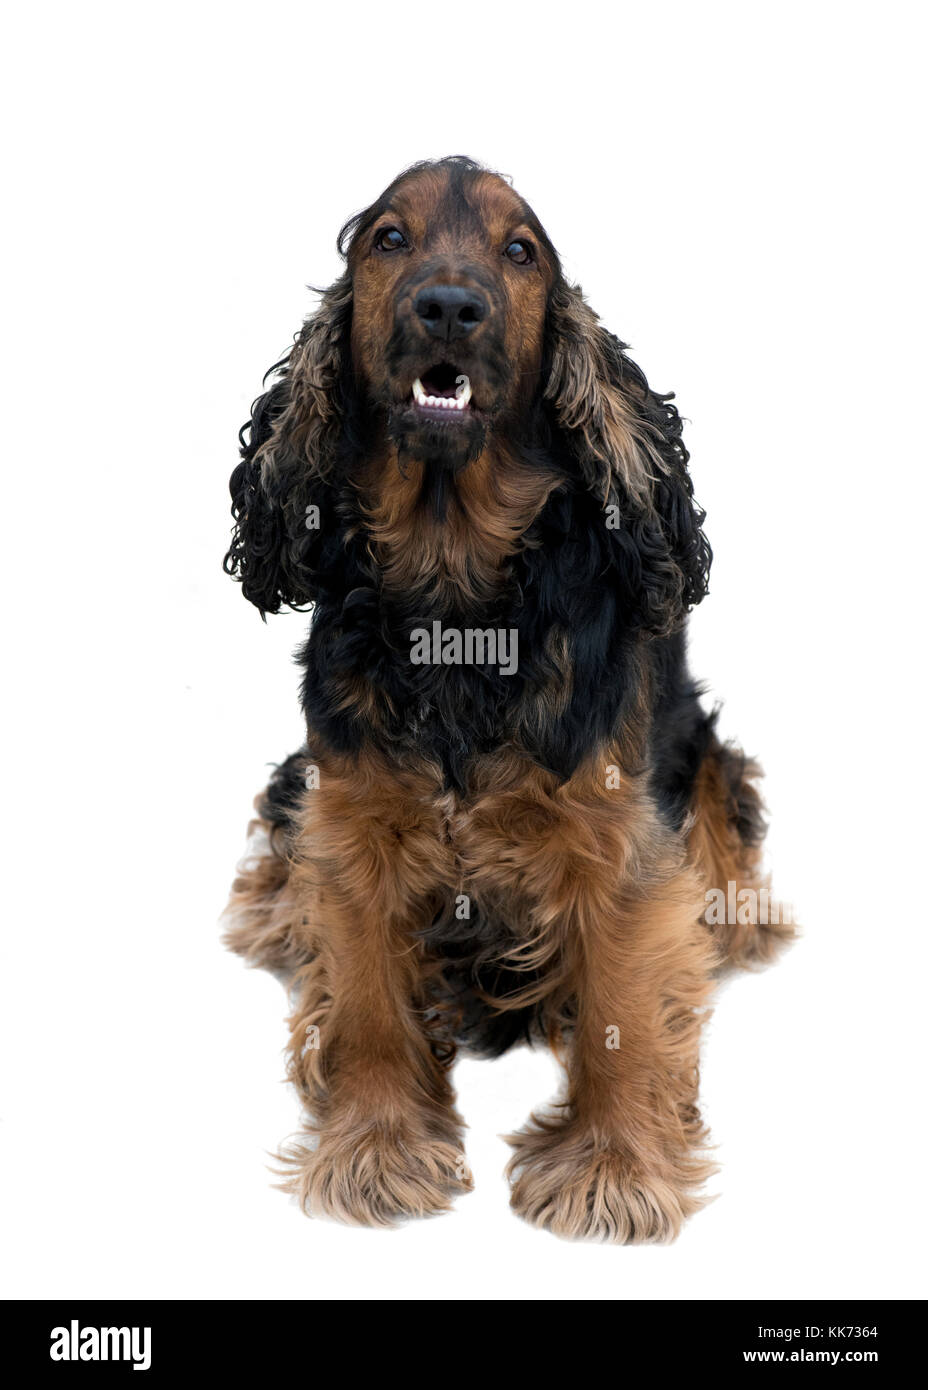 stunning pedigree black and tan cocker spaniel sat showing beautiful white teeth isolated on a white background - Stock Image